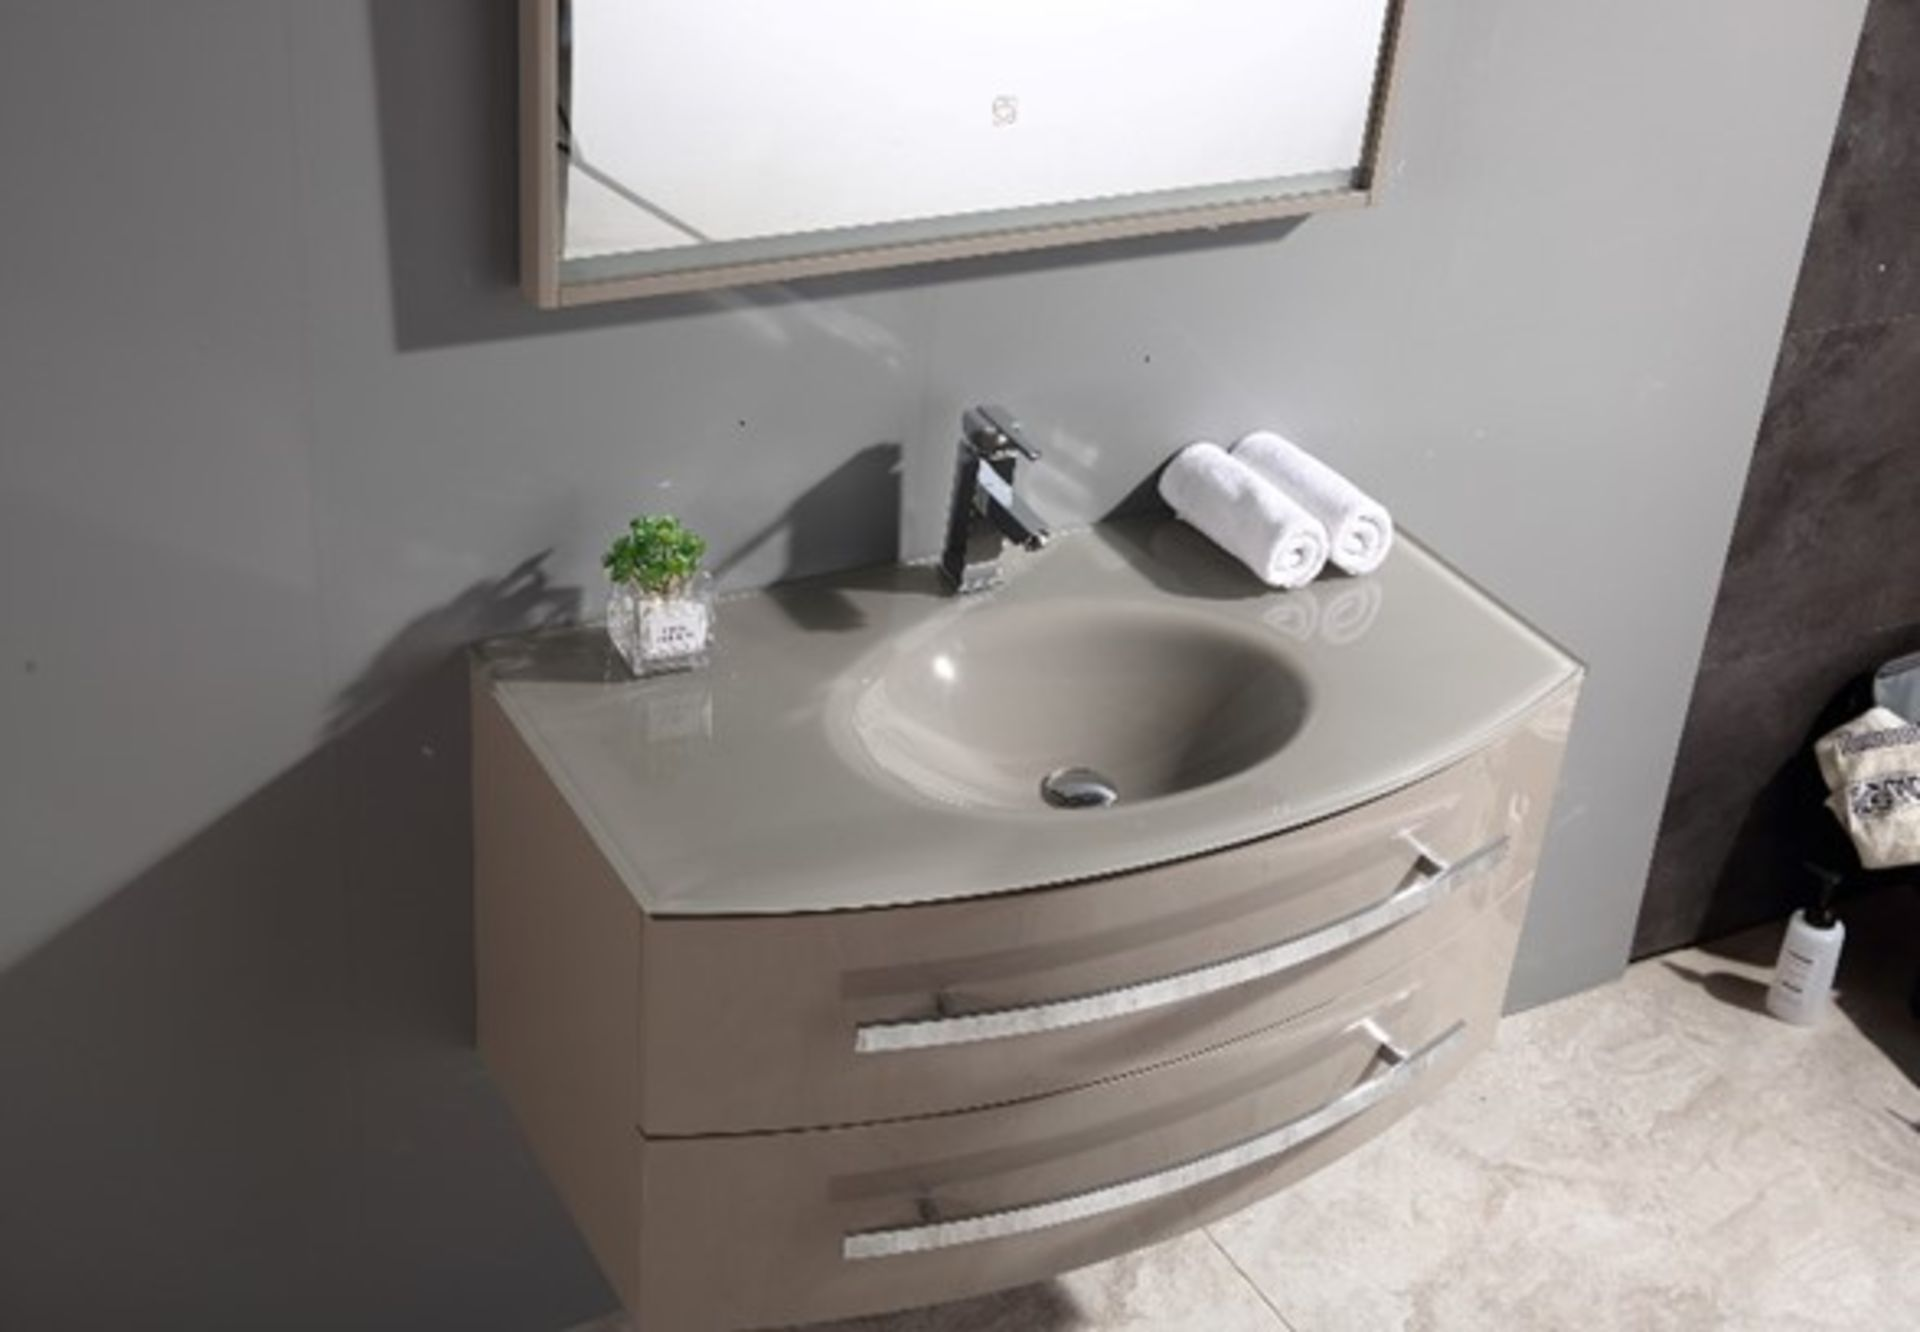 Lot 15 - Miura Bathroom Vanity Unit & Glass Basin Sink